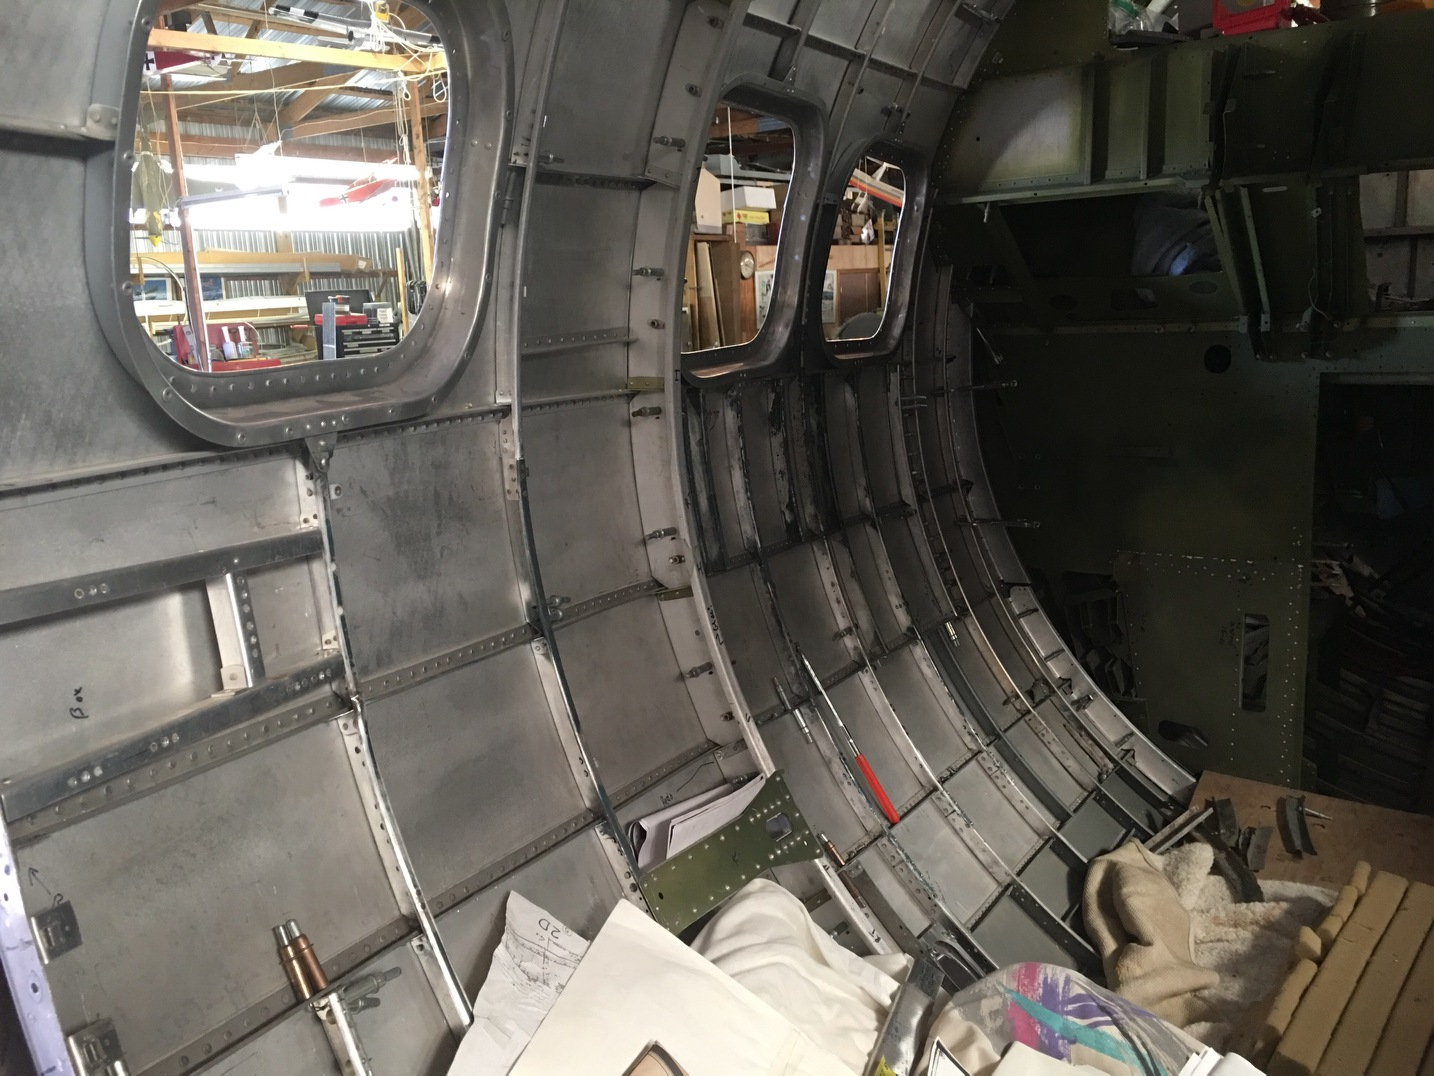 An interior view of Desert Rat's nose section. (photo via Vintage Aviation Museum)